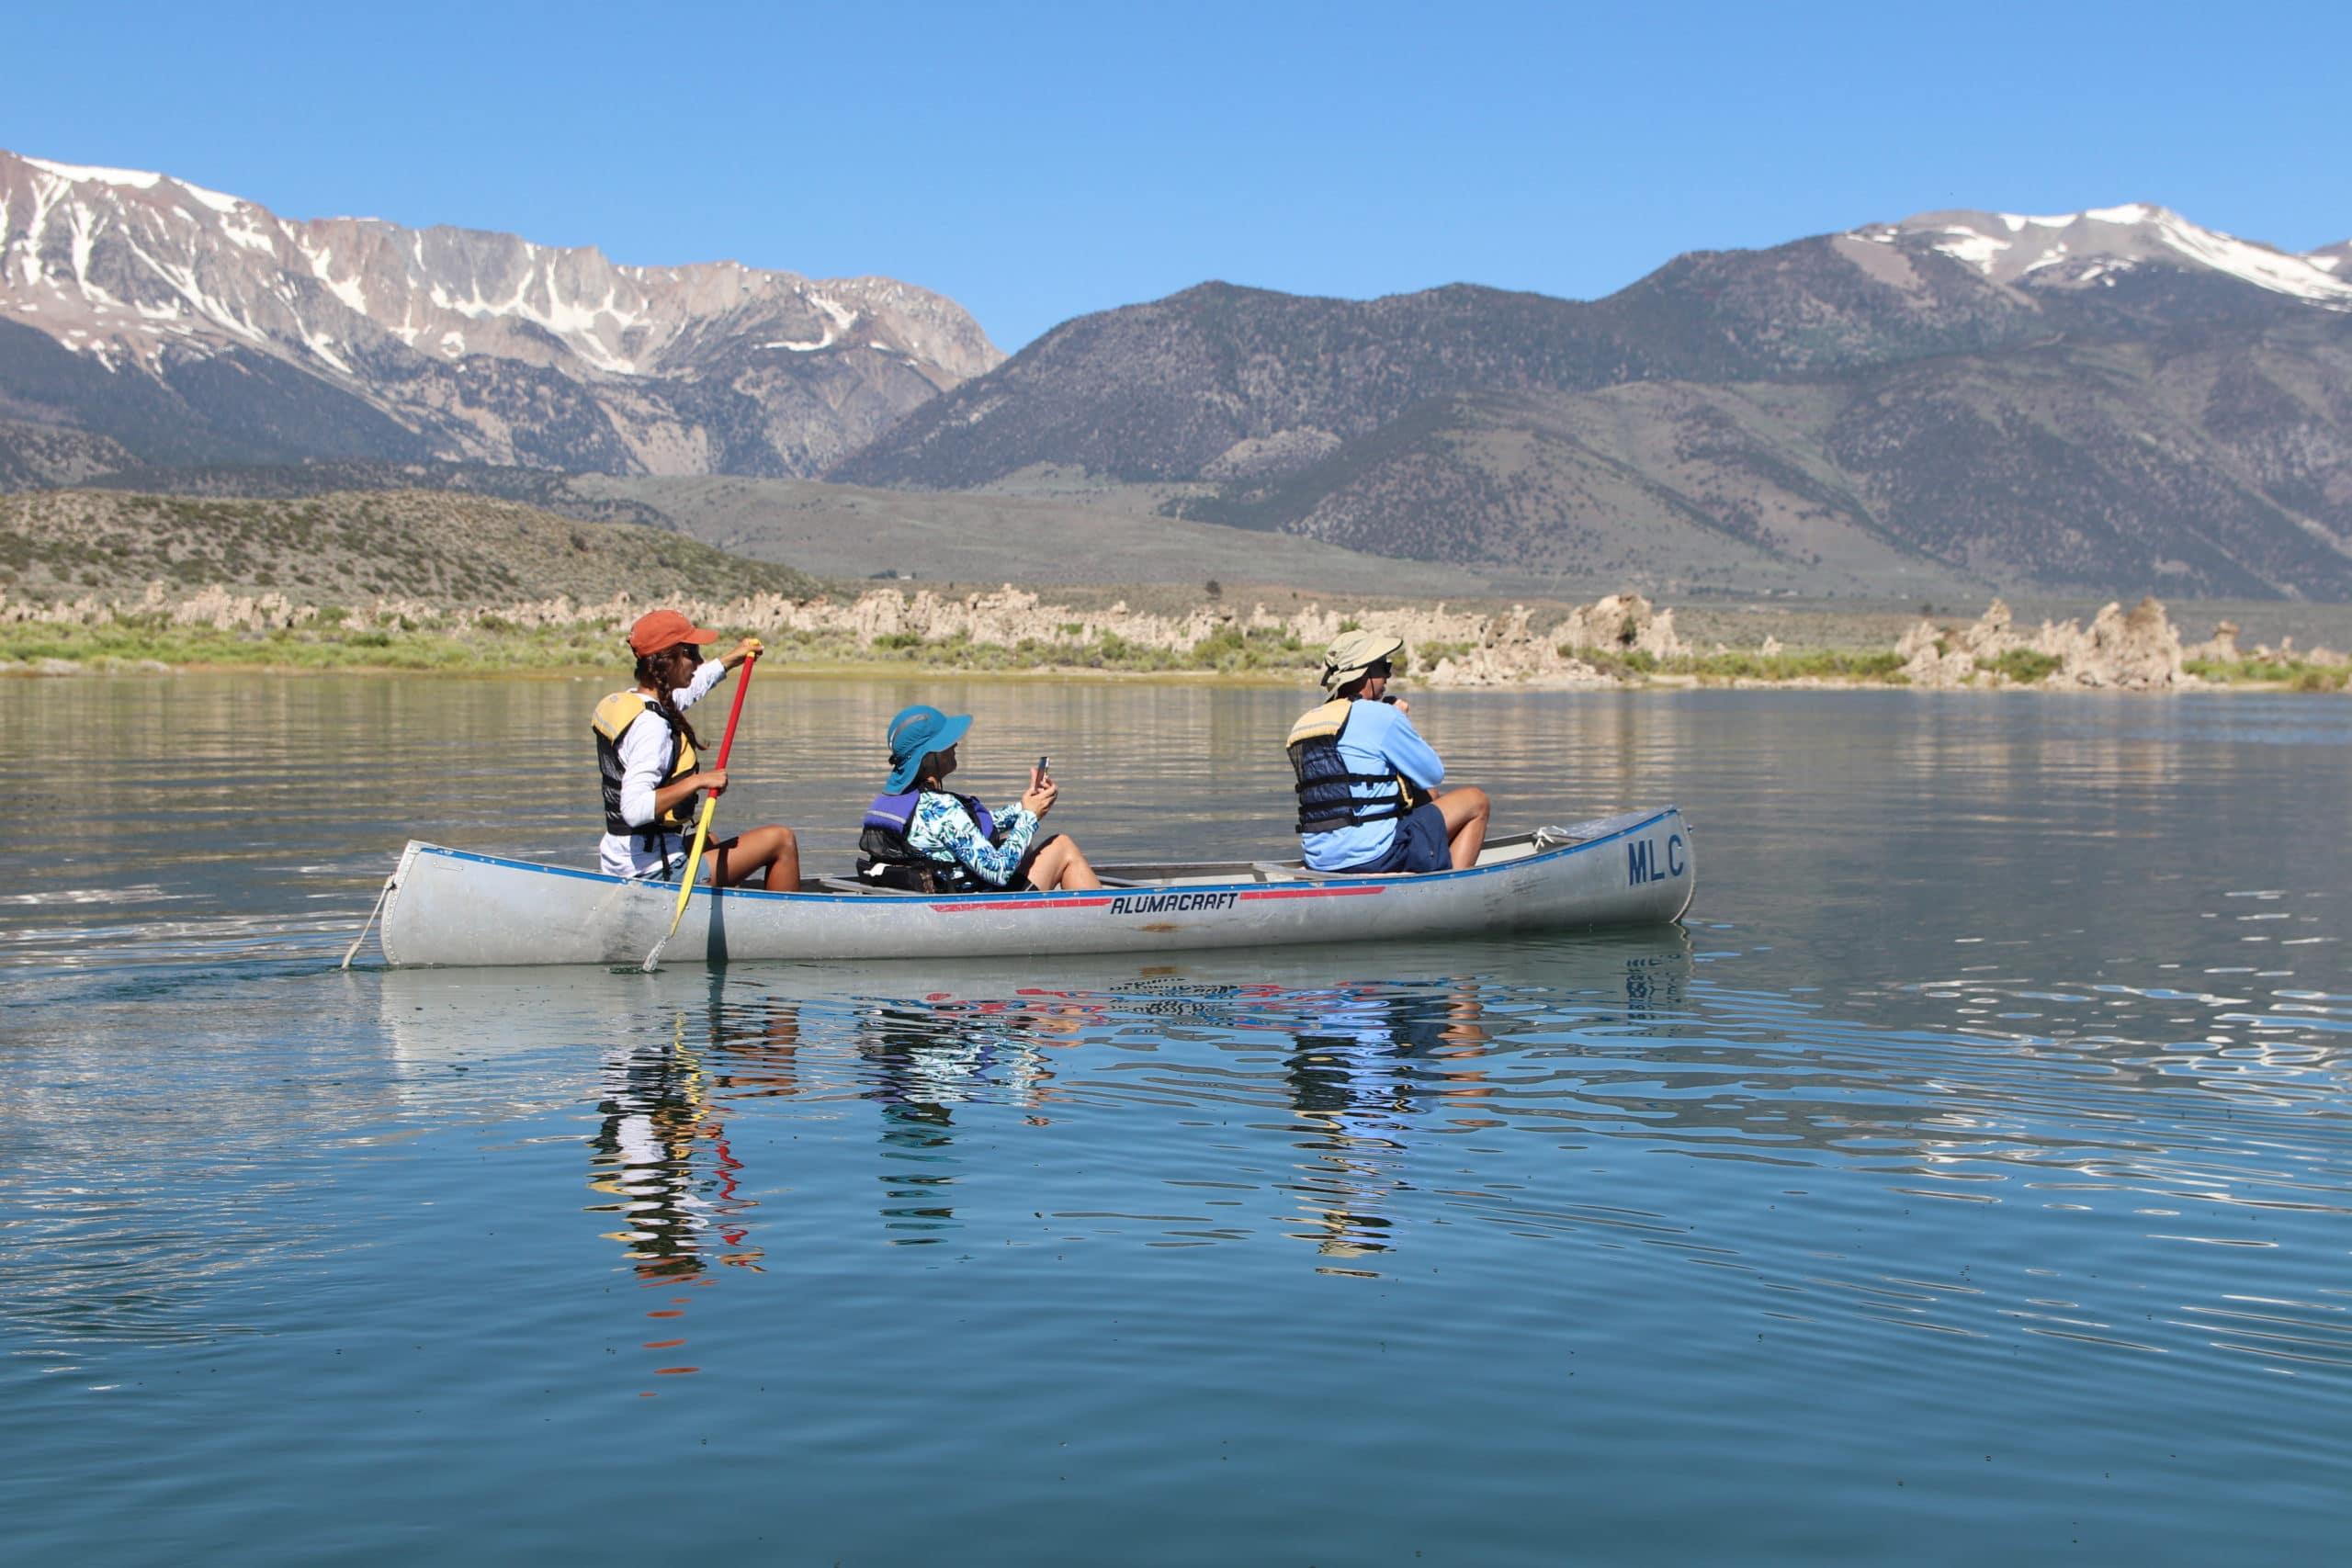 Three people canoeing on Mono Lake on glassy water with tufa towers and tall mountains with snow on them in the distance.